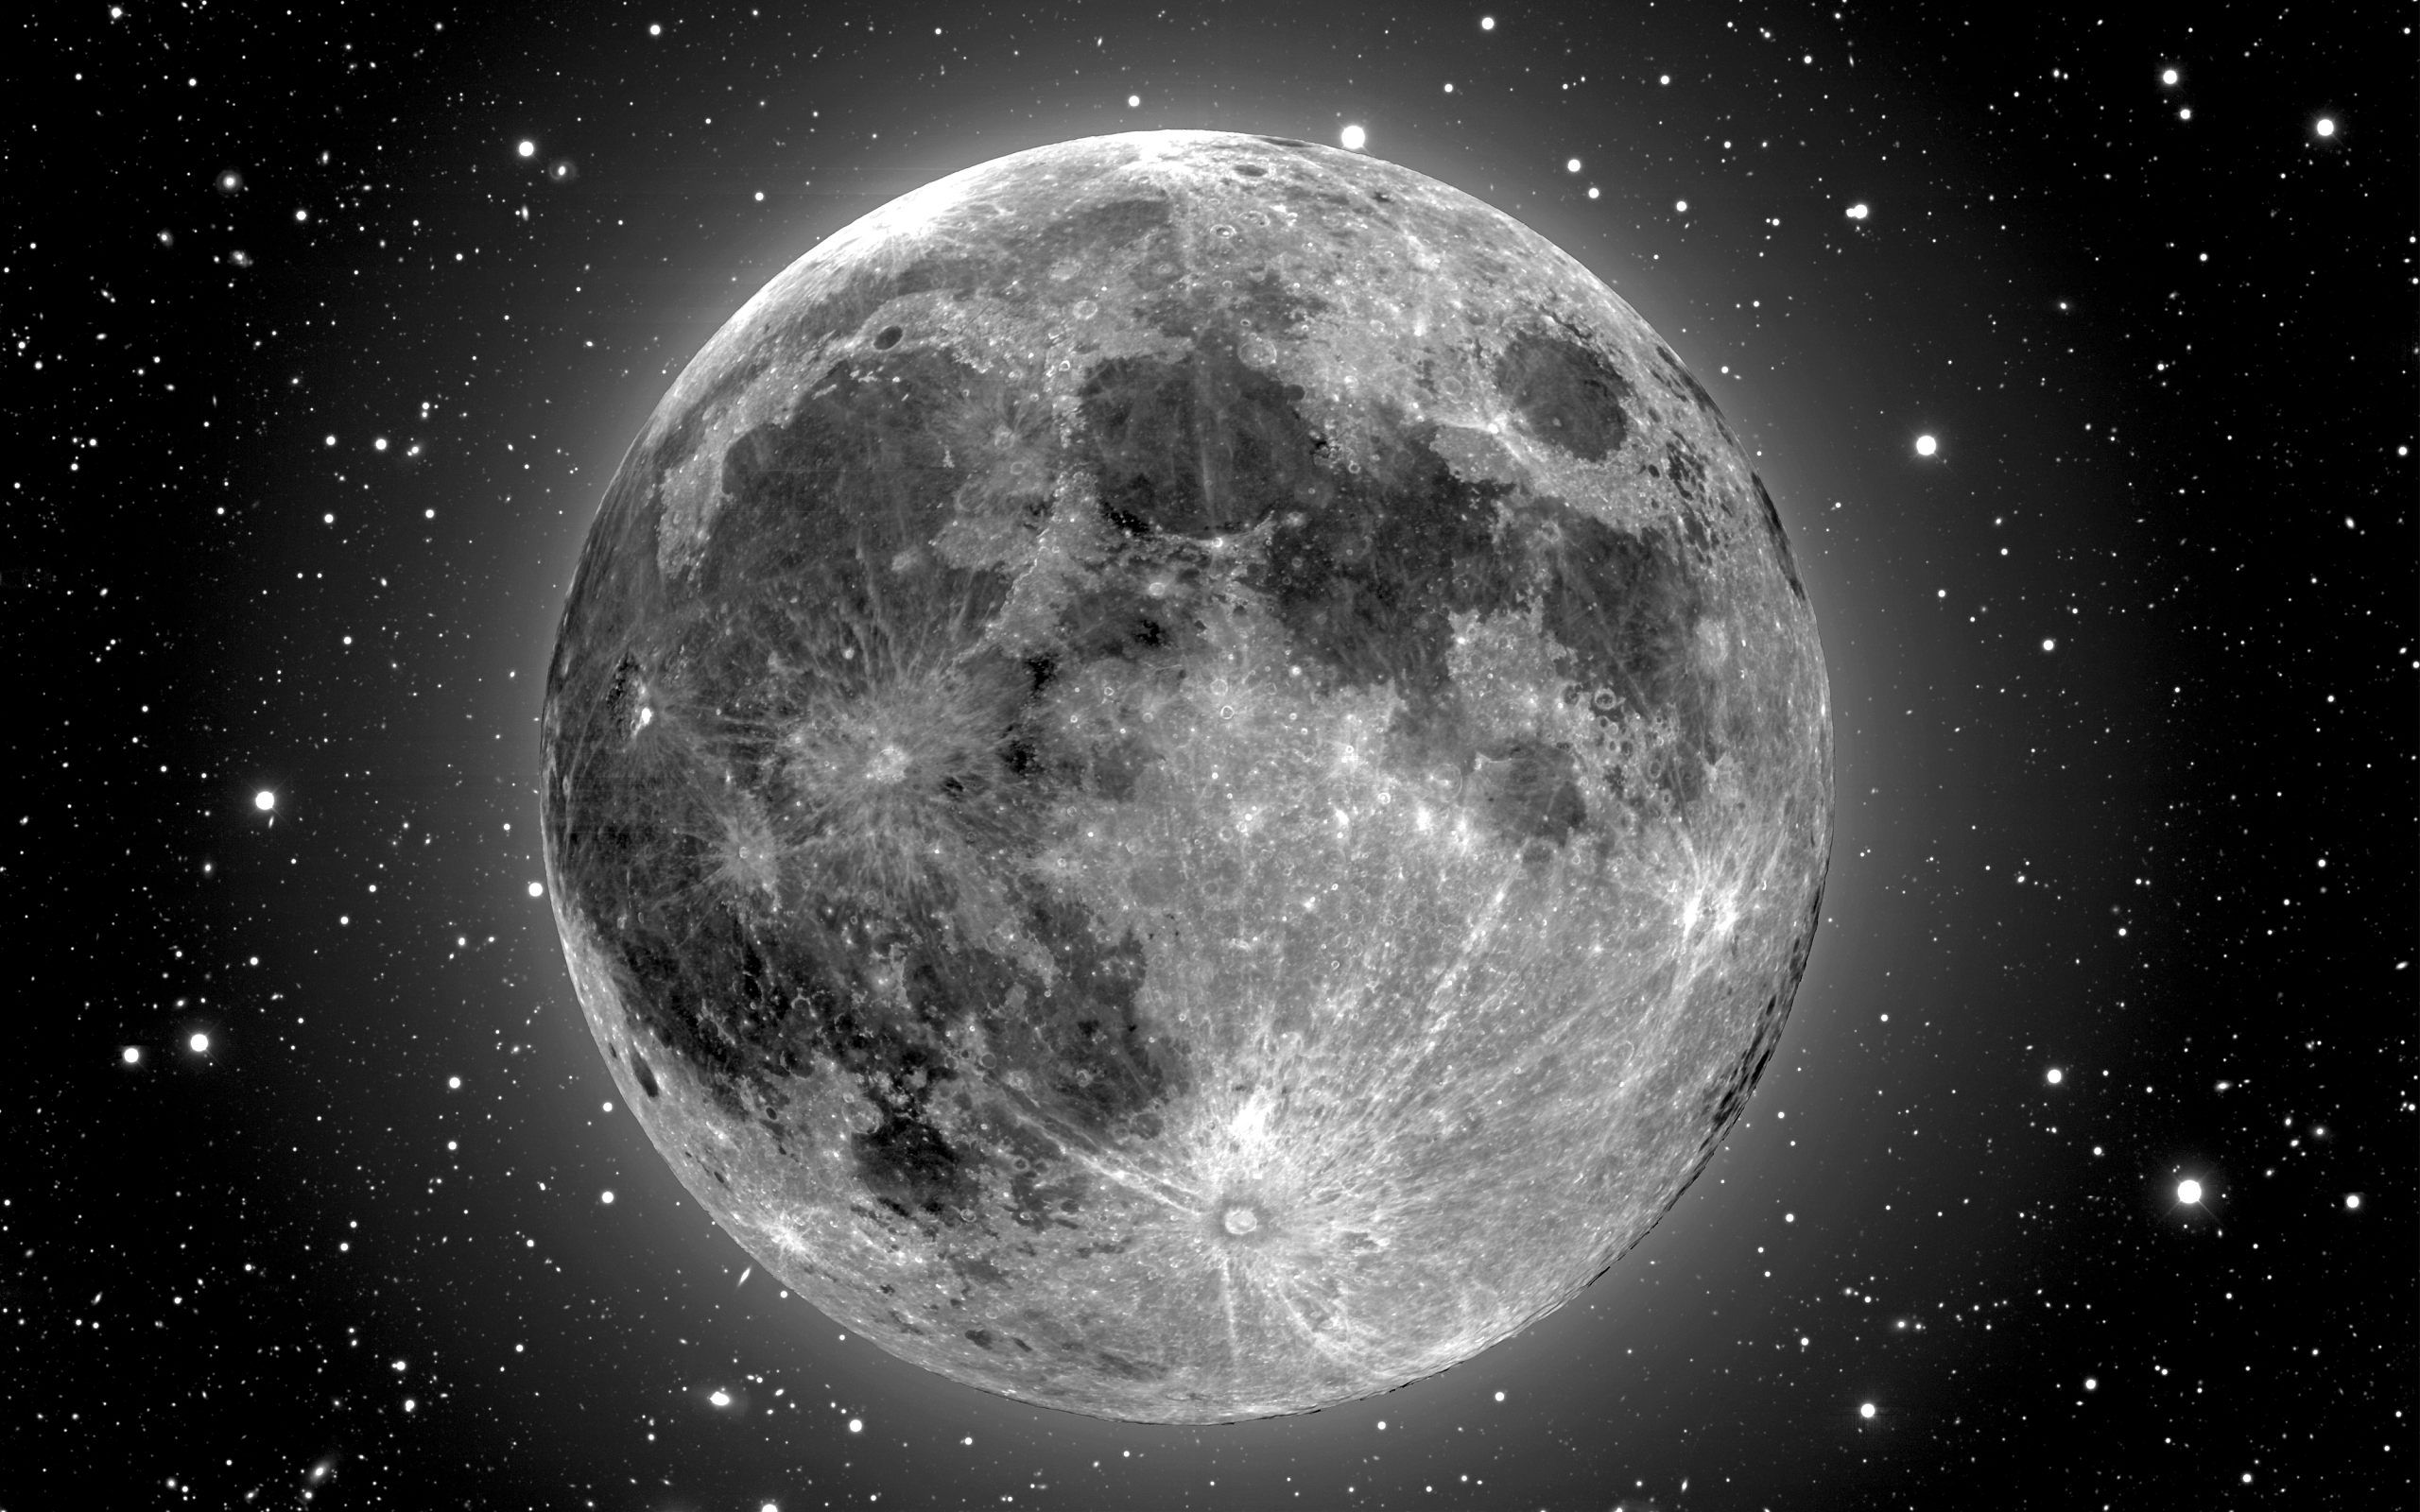 full moon black and white wallpaper hd 2560a—1600